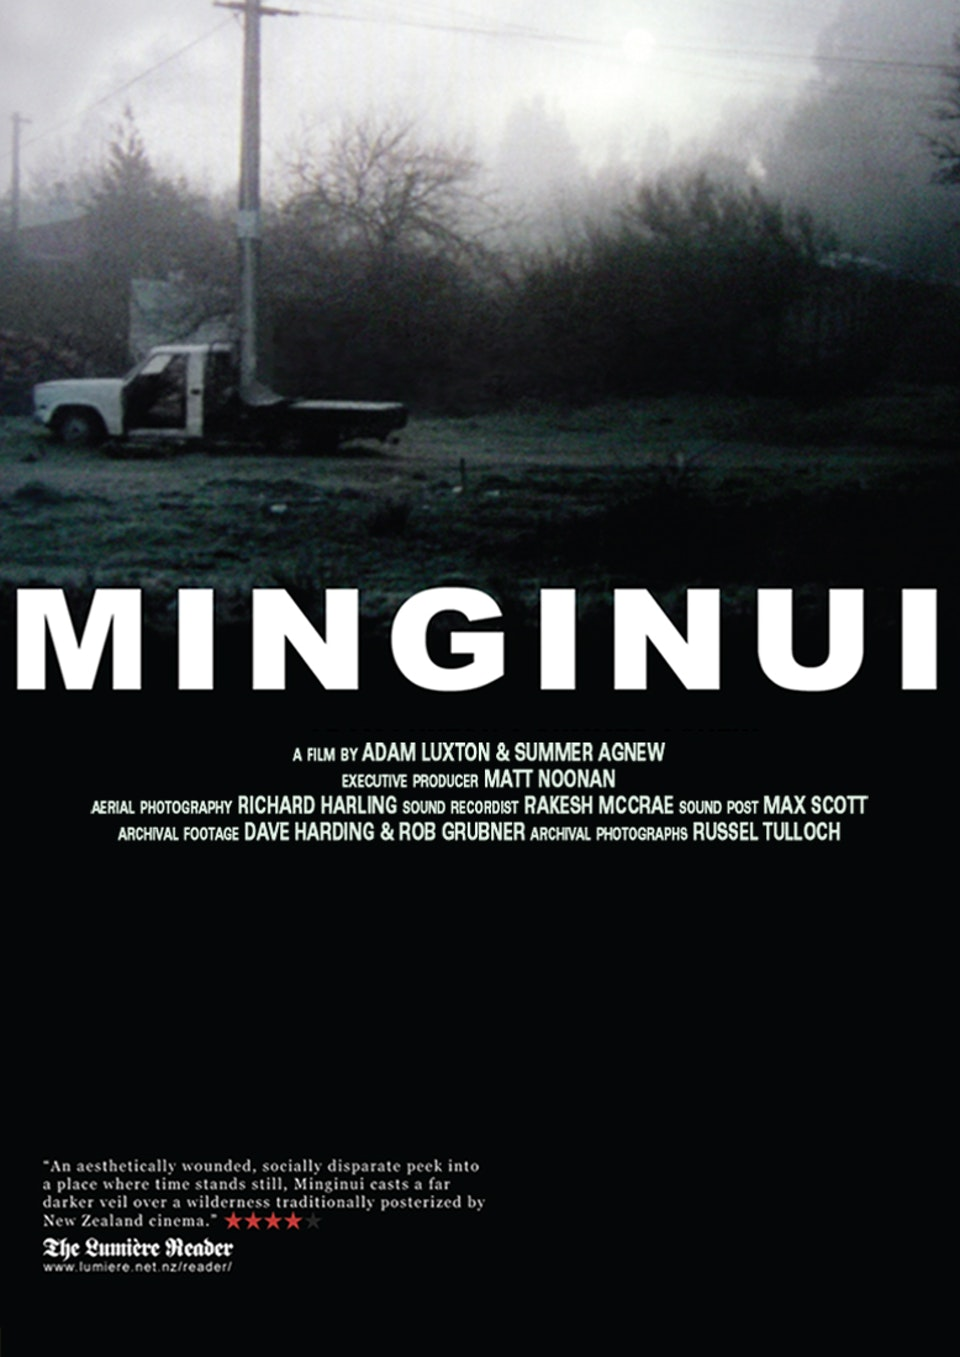 summer agnew makes films - miniginui